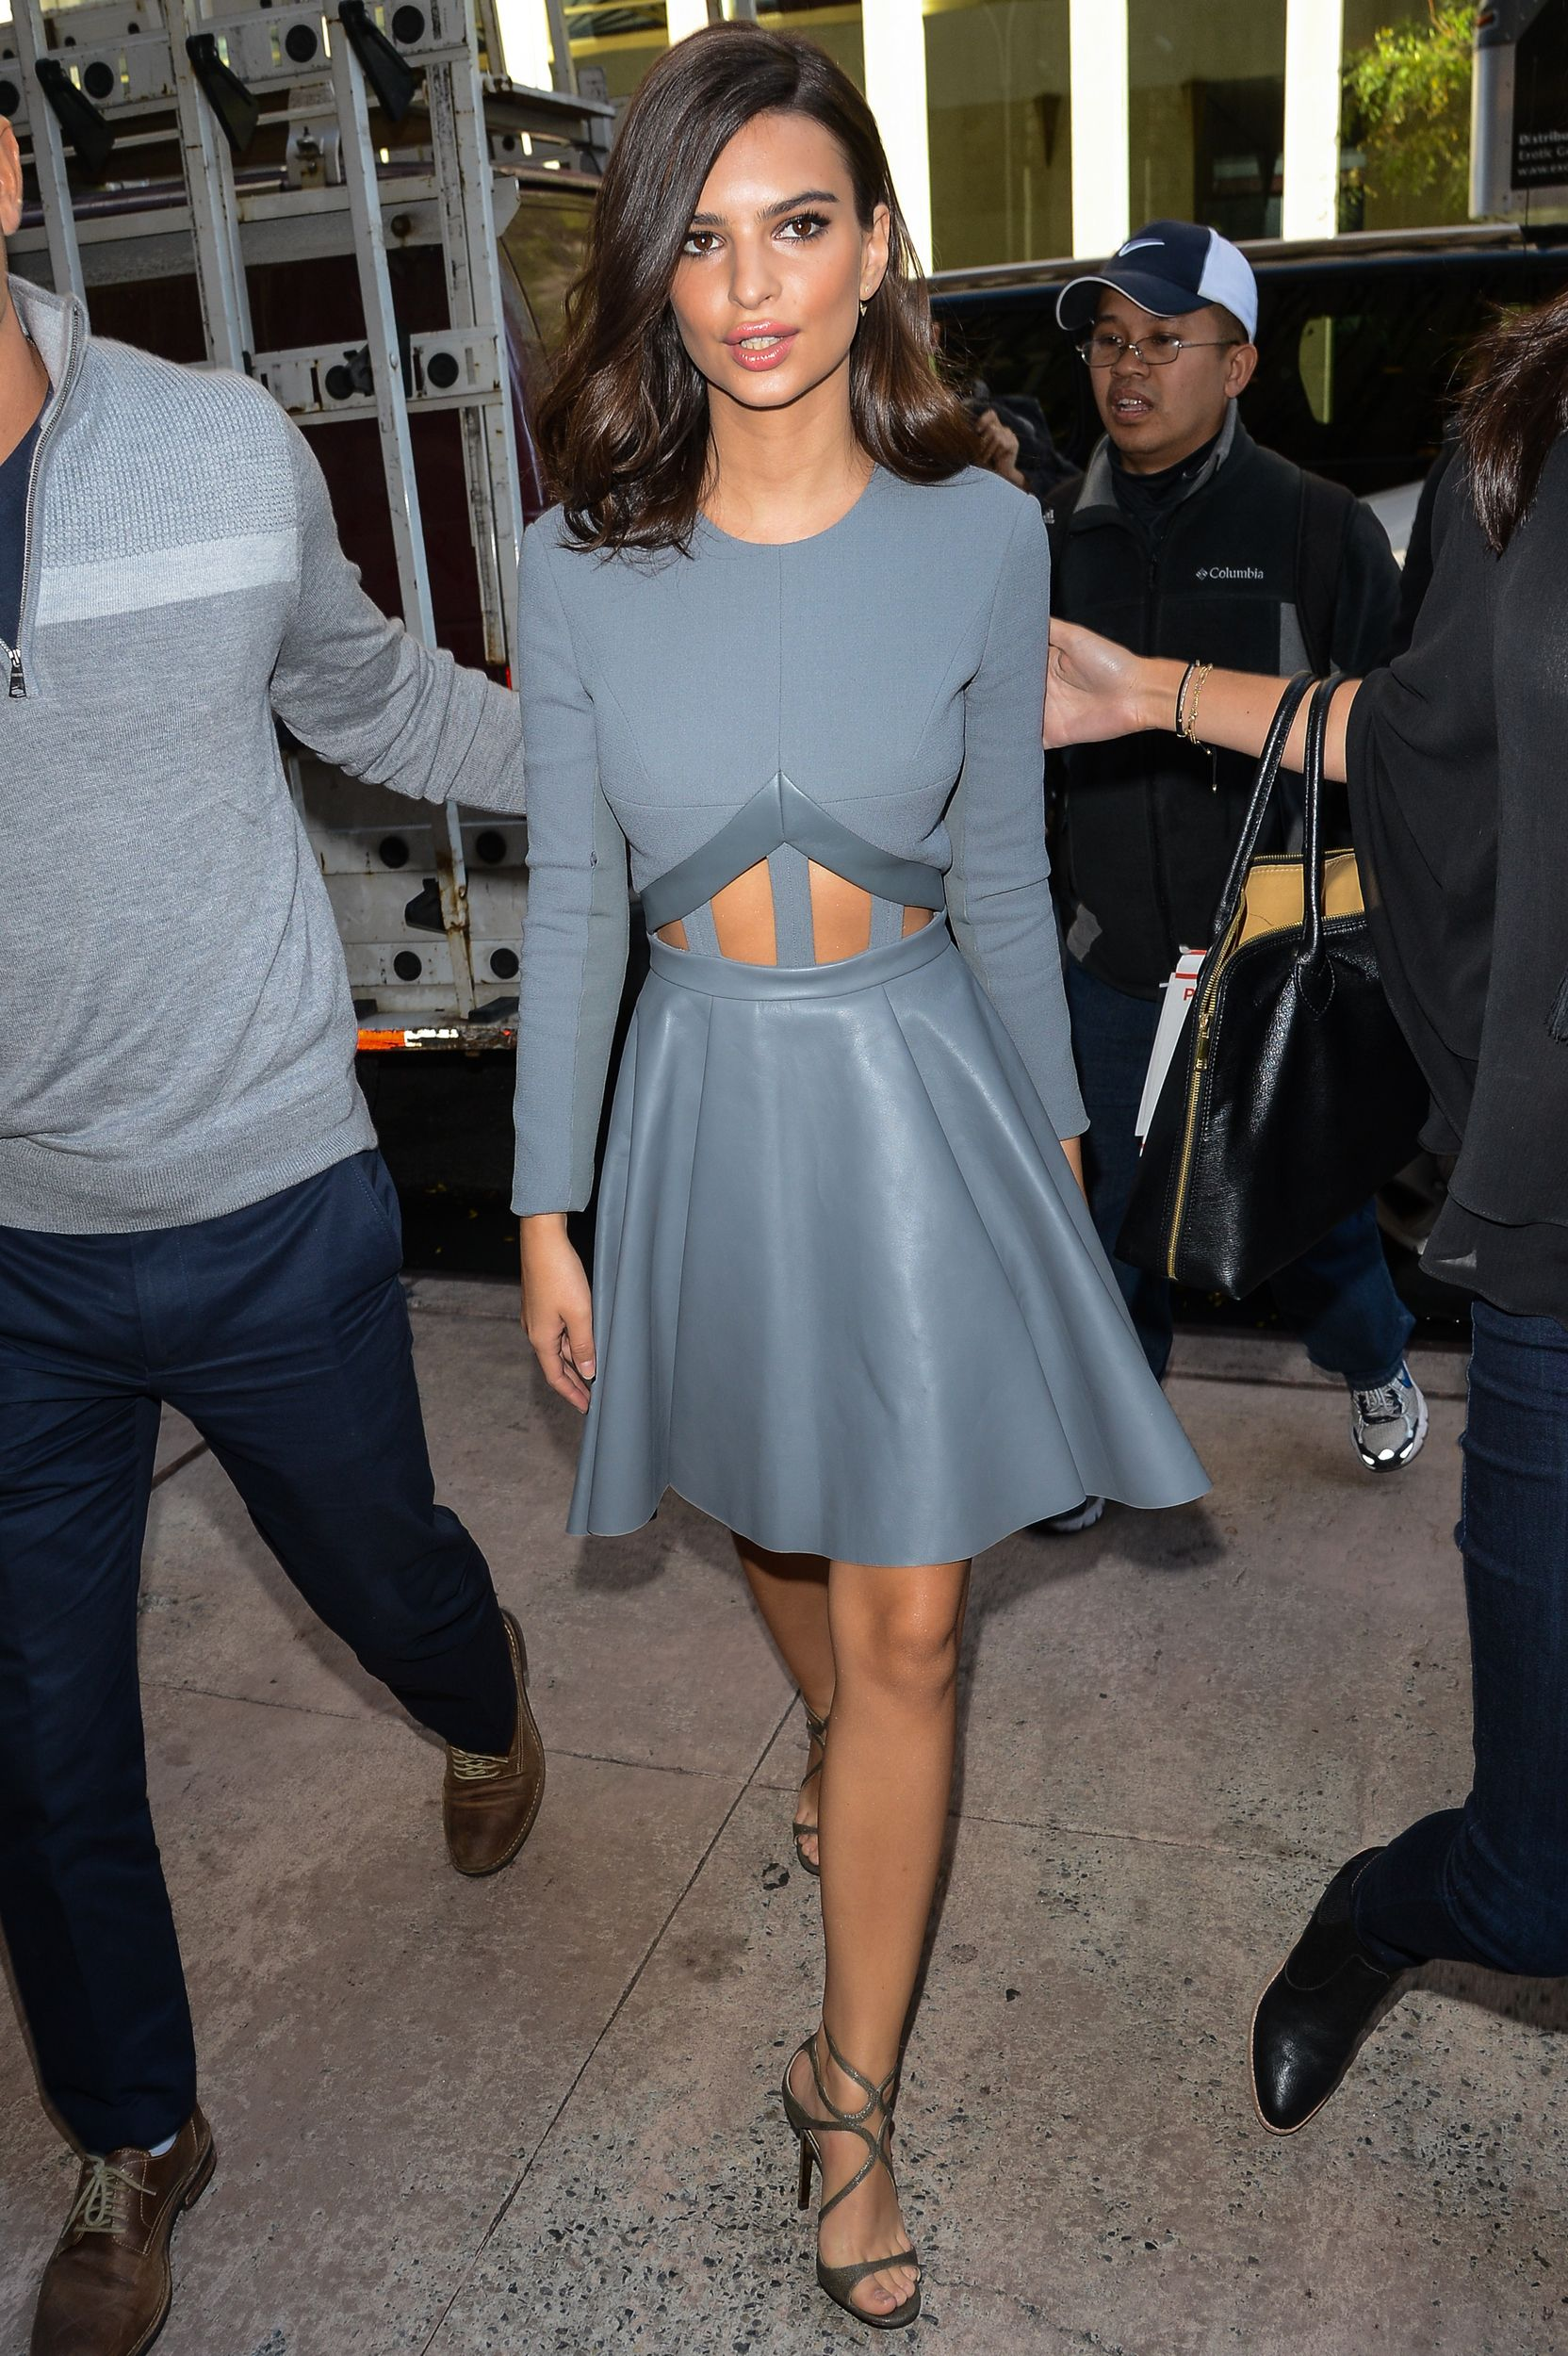 Emily Ratajkowski in David Koma at the Sirius XM Studios in New York City. via @stylelist | http://aol.it/1rVhriY